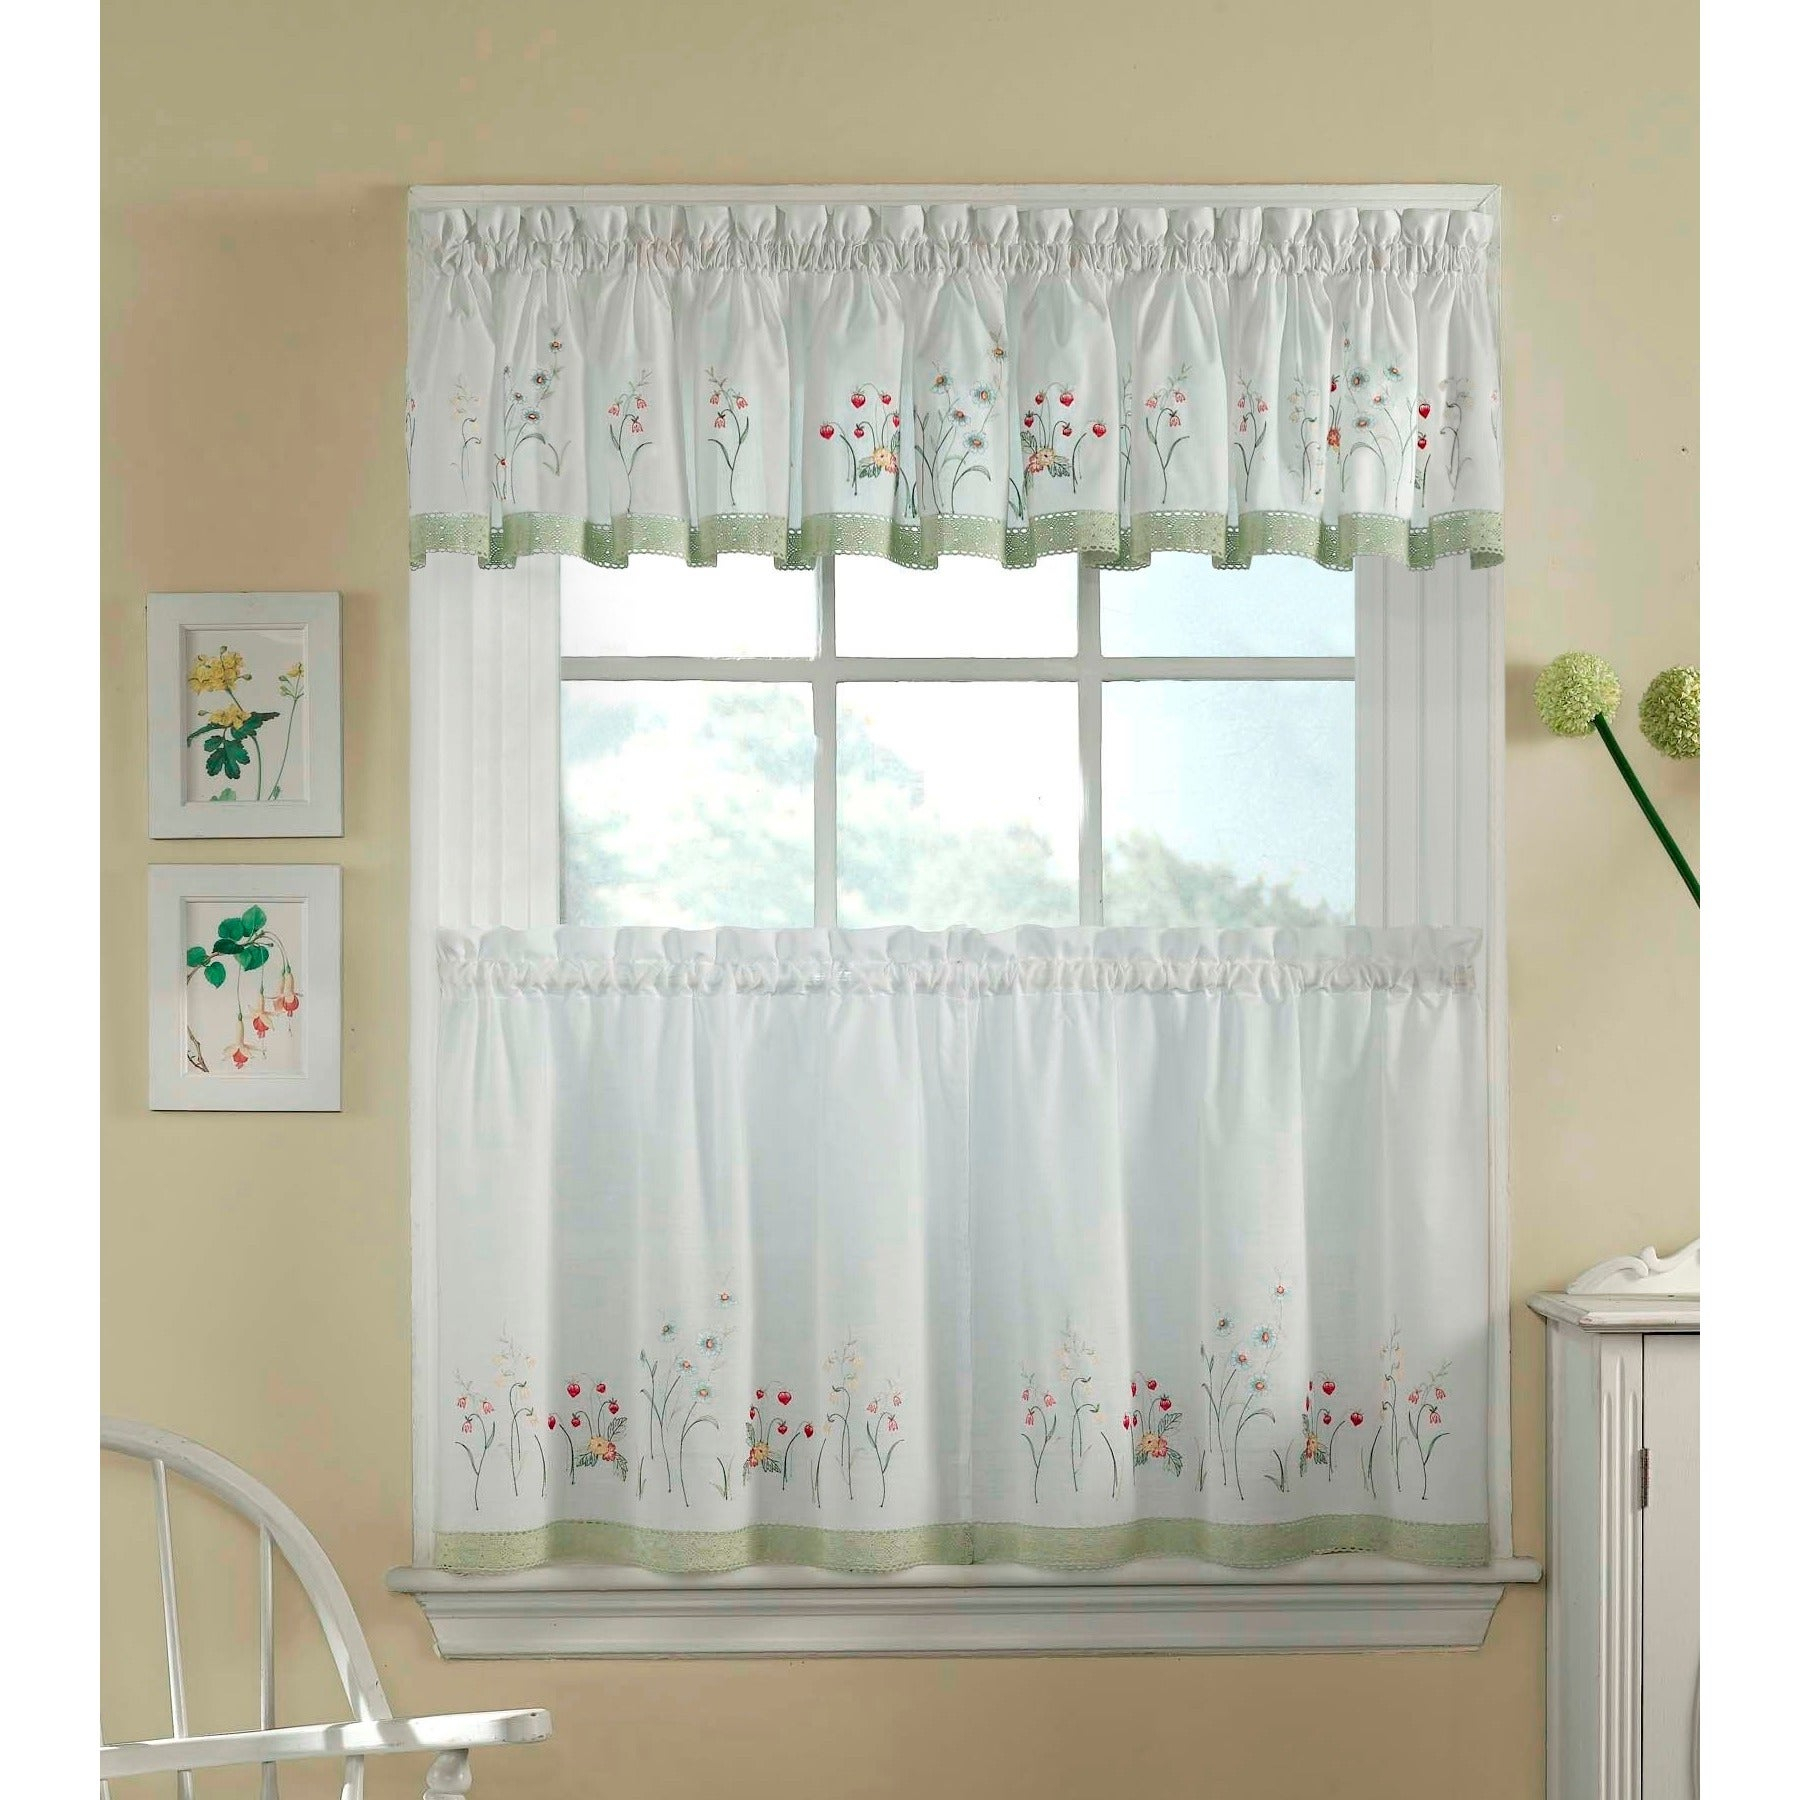 Garden Flowers 3 Piece Curtain Tier And Valance Set Within Spring Daisy Tiered Curtain 3 Piece Sets (View 10 of 20)